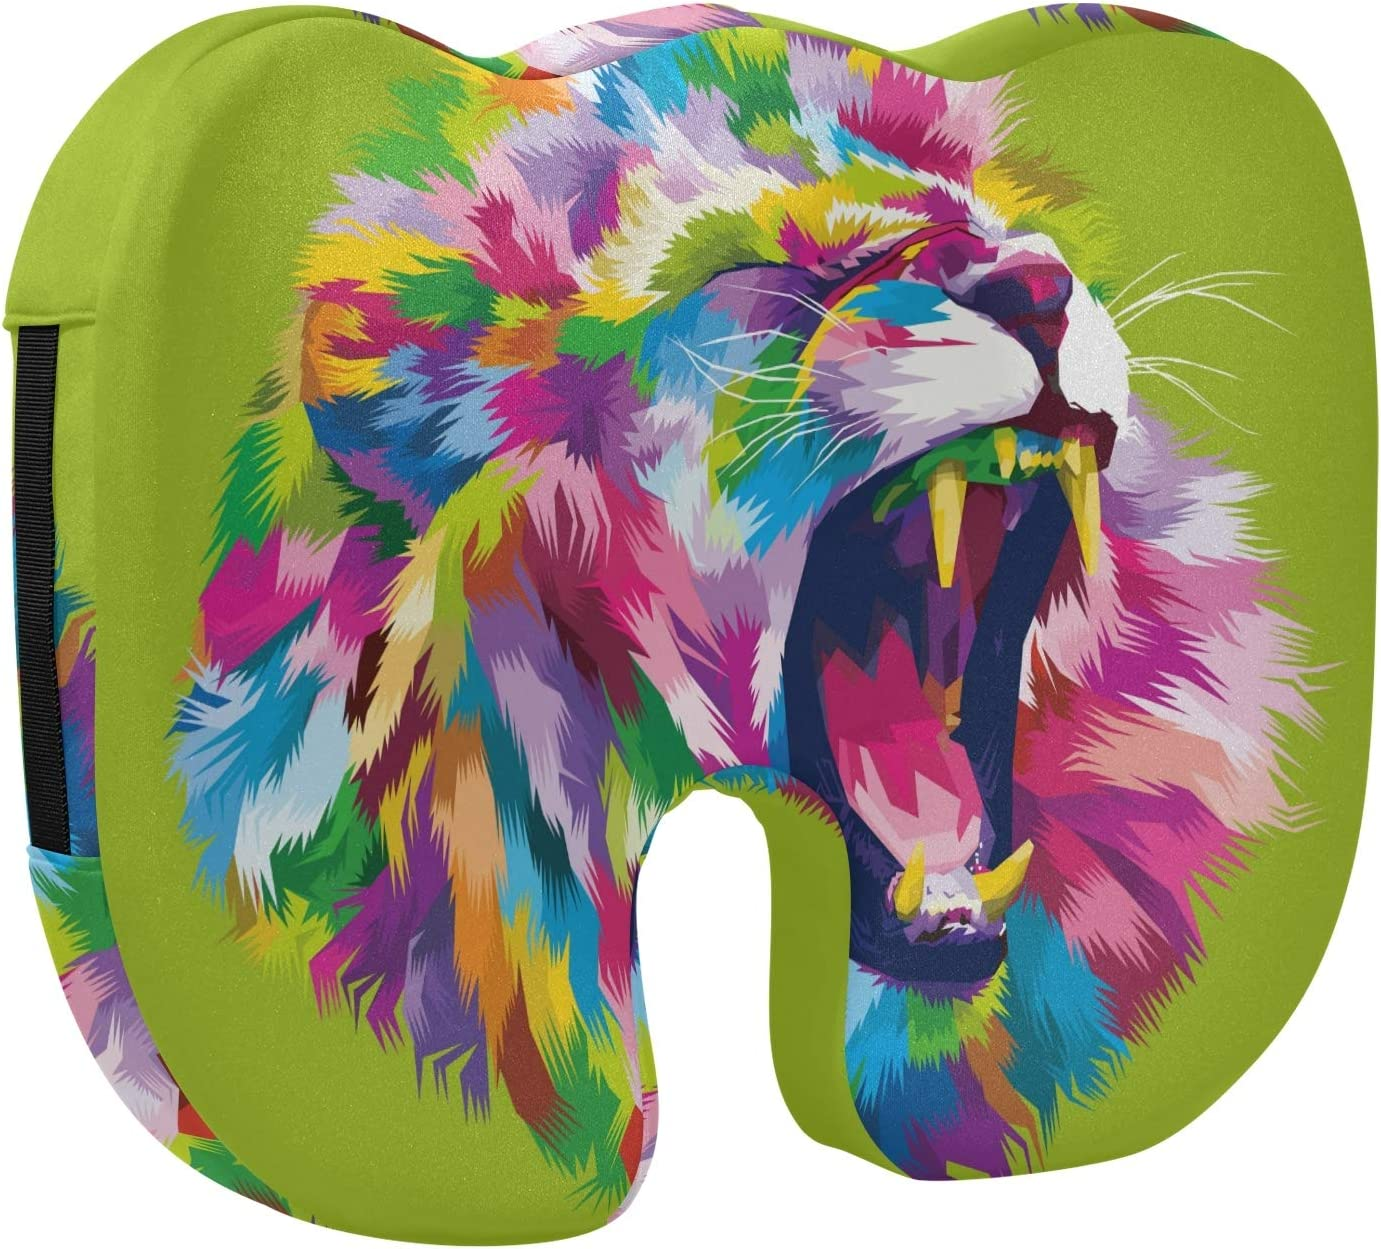 Screaming Lion Cool excellence Direct sale of manufacturer Designed Printed Cu Stretch Memory Seat Foam